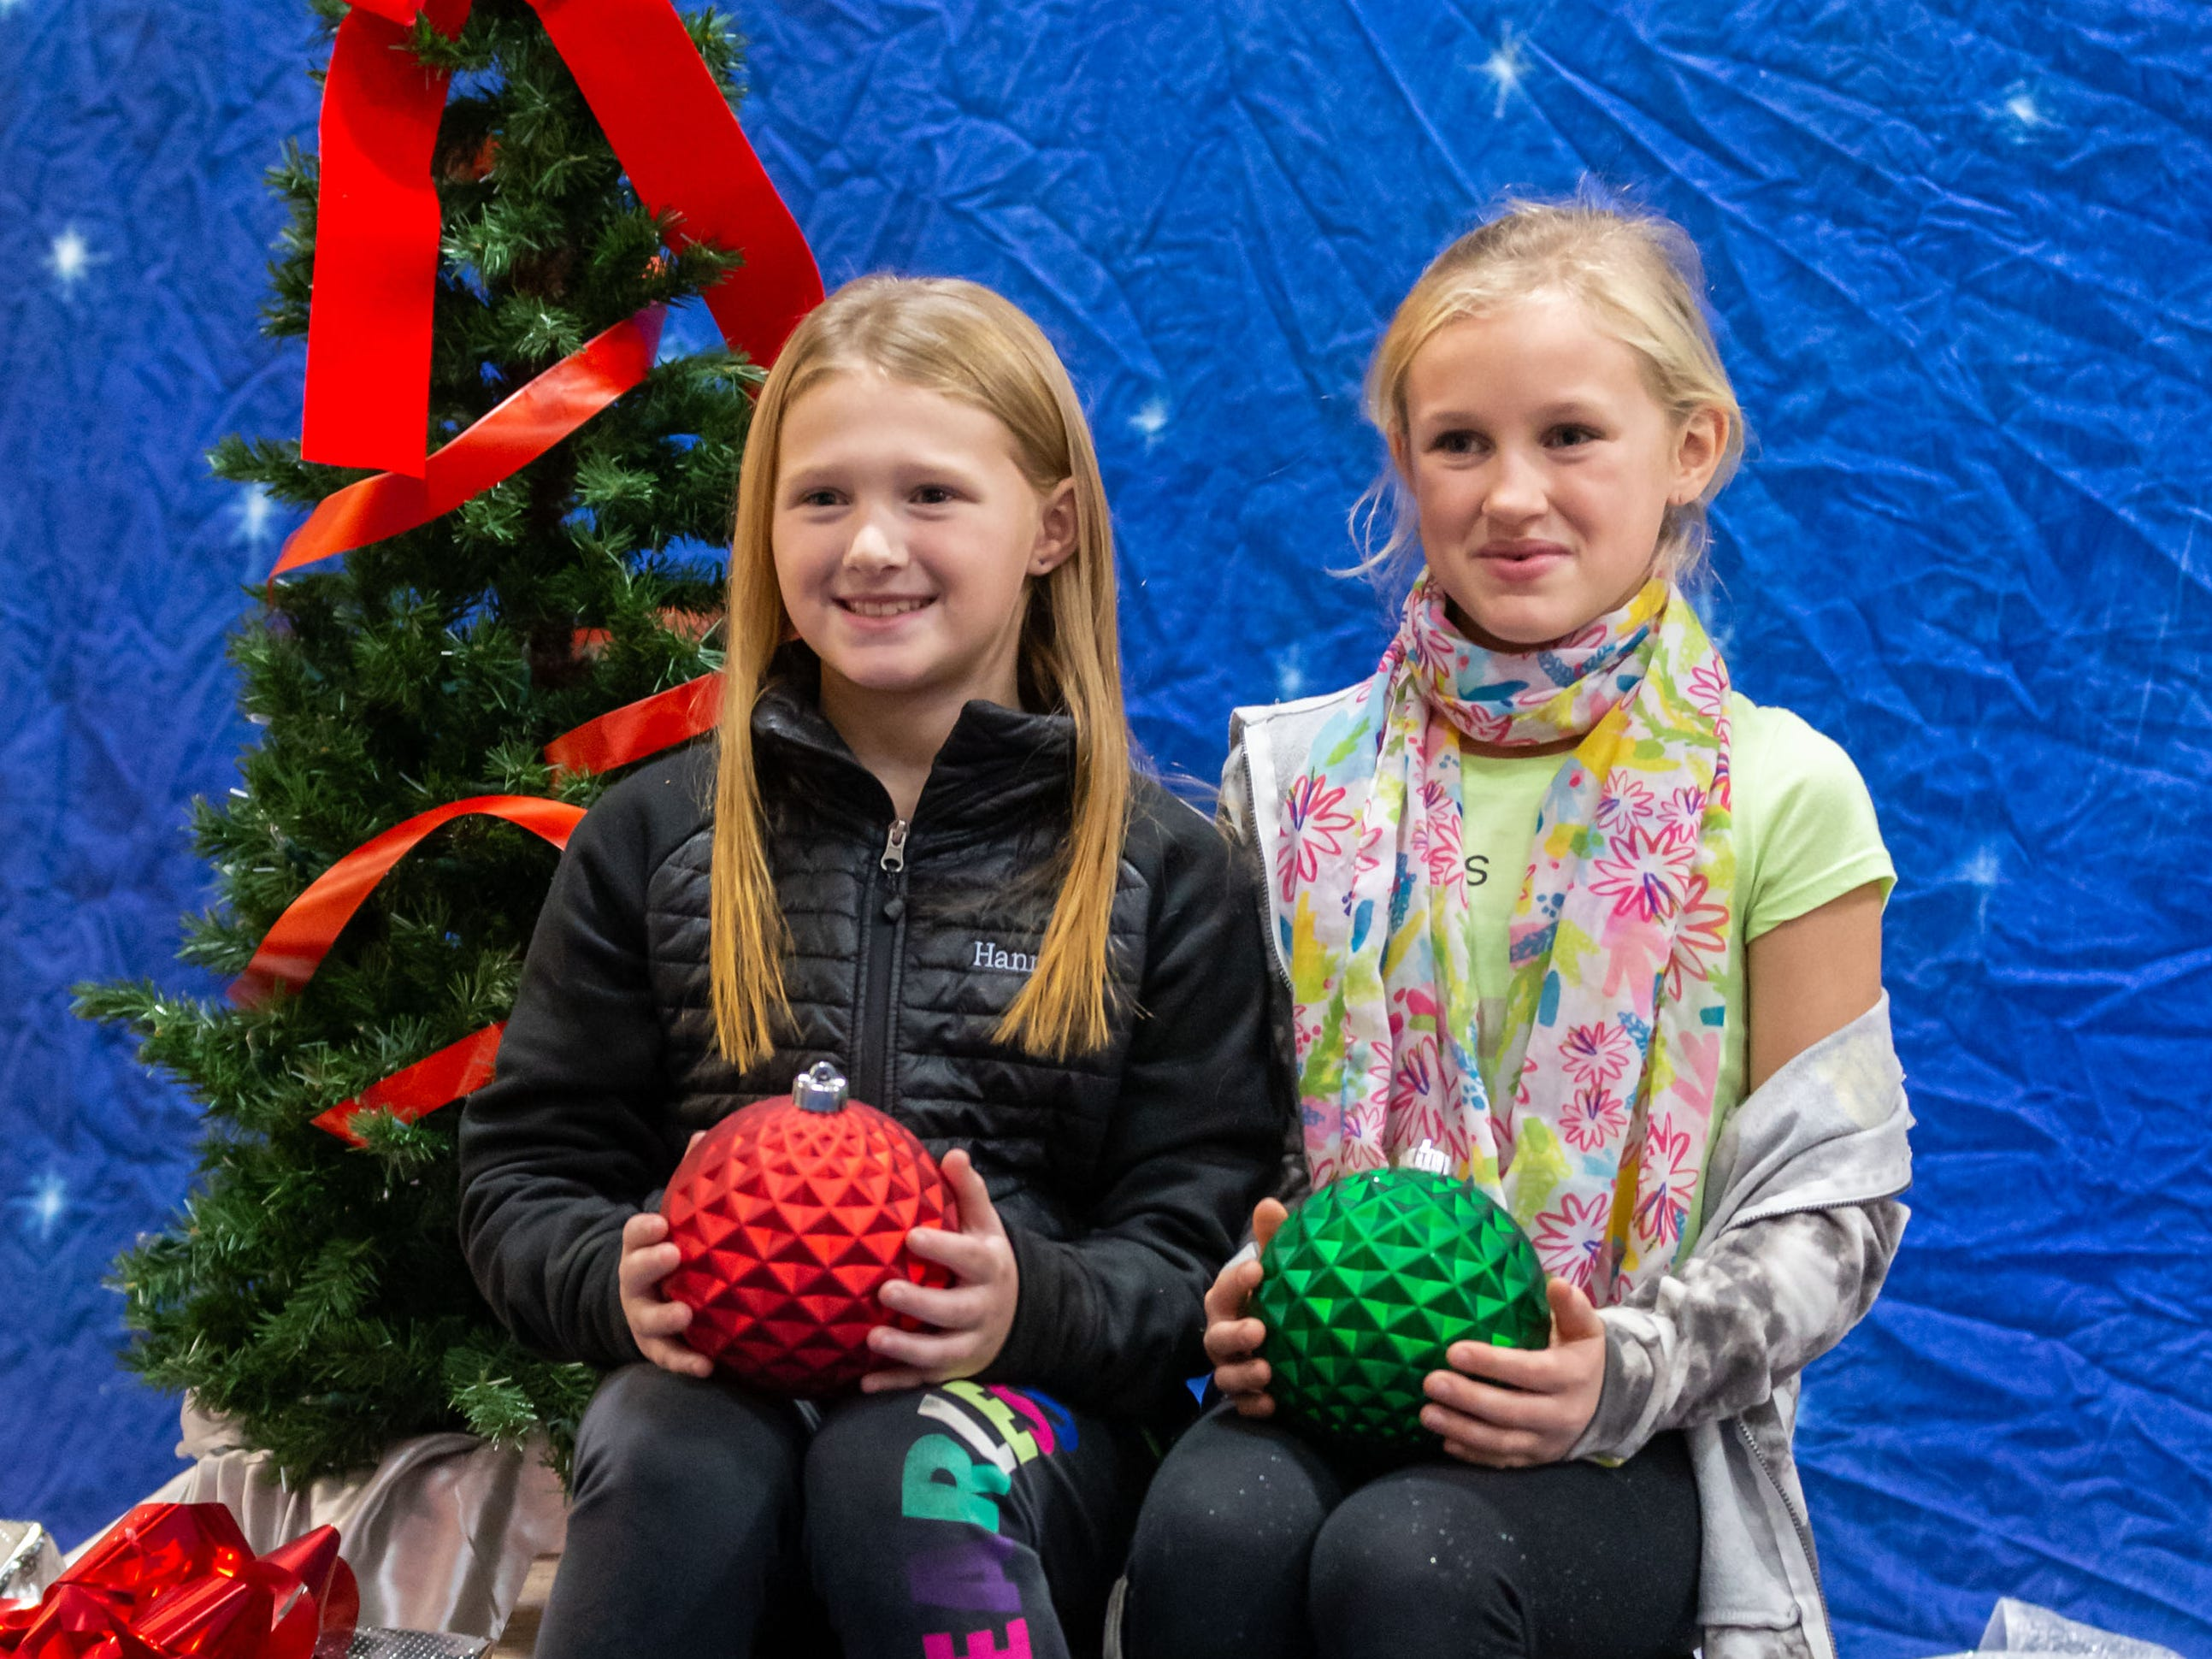 Hannah Ehr (left), 8, and Kara Kutz, 8, both of Cedarburg, pause for a holiday photo during Cedarburg's annual tree lighting ceremony at the Community Center on Monday, Nov. 26, 2018. The event, hosted by Cedarburg Chamber of Commerce, features make-and-take crafts, cookies, cider, music, caroling and a visit from Santa to light the tree.